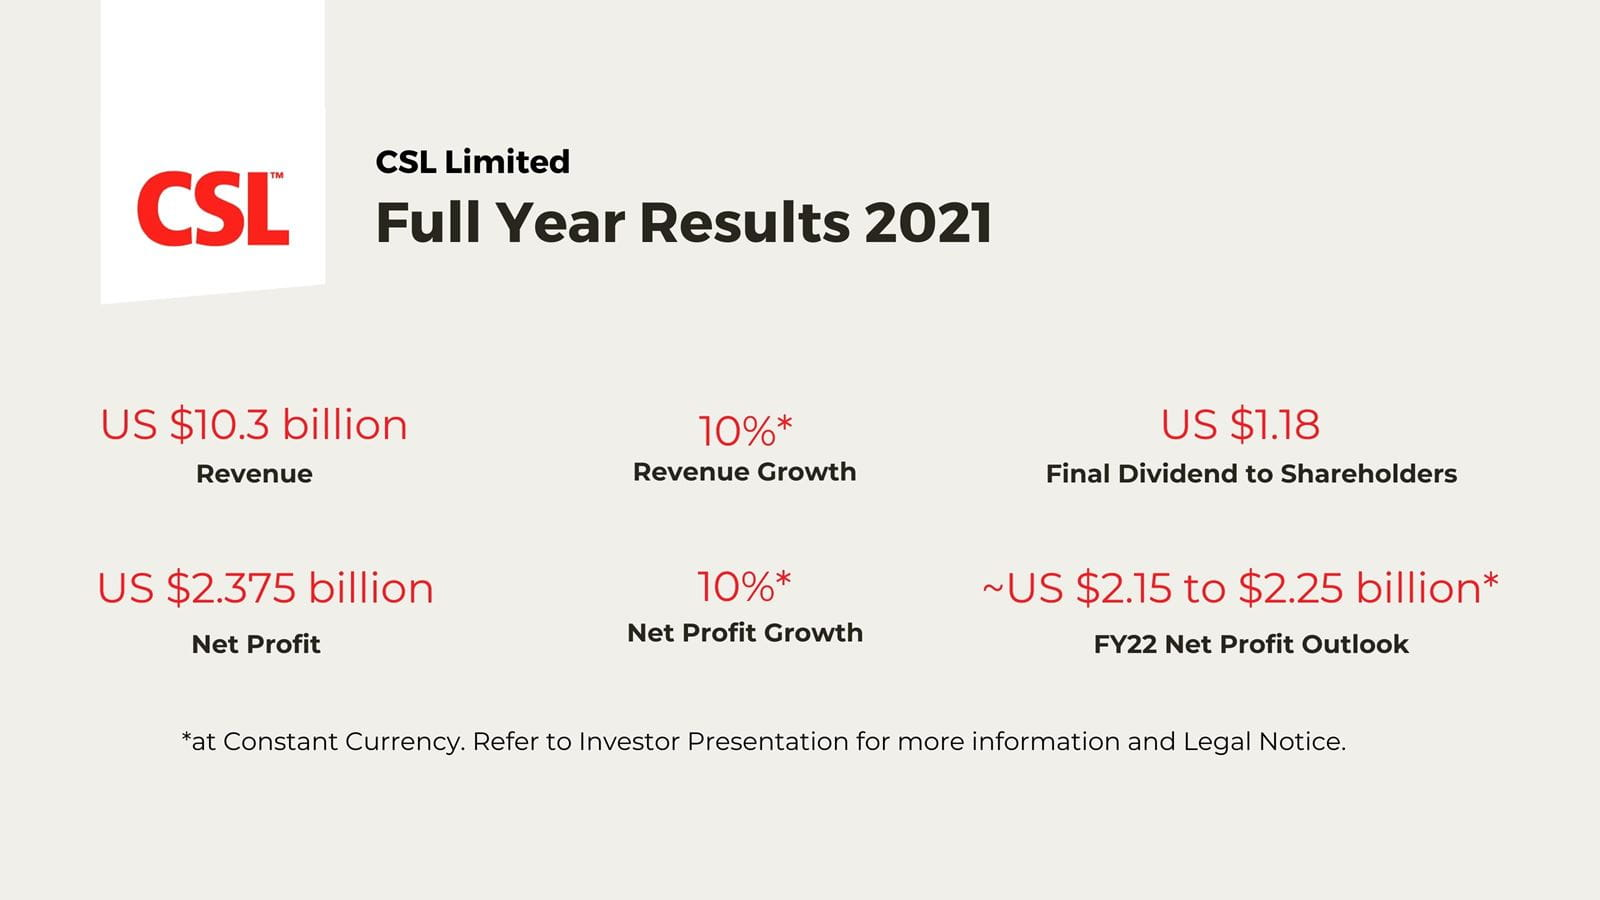 Graphic showing the FUll Year Results 2021